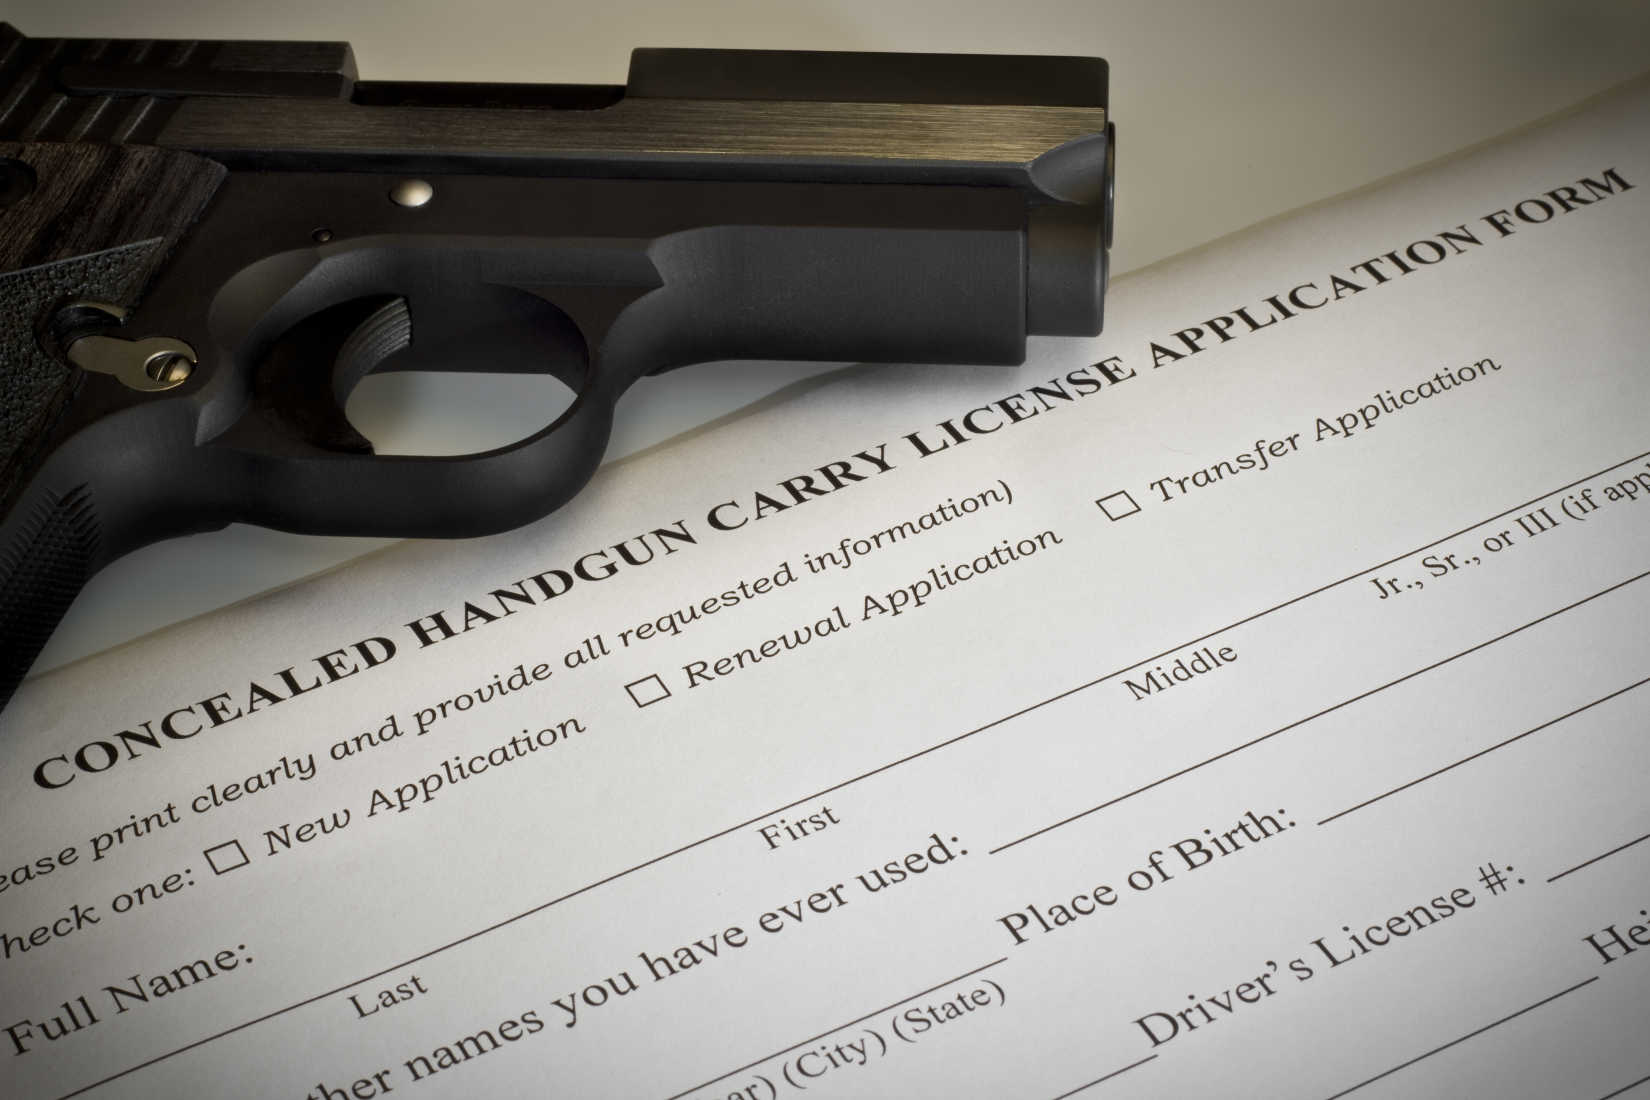 FBI: Crime Dropped in West Virginia Once Constitutional Carry Took Effect